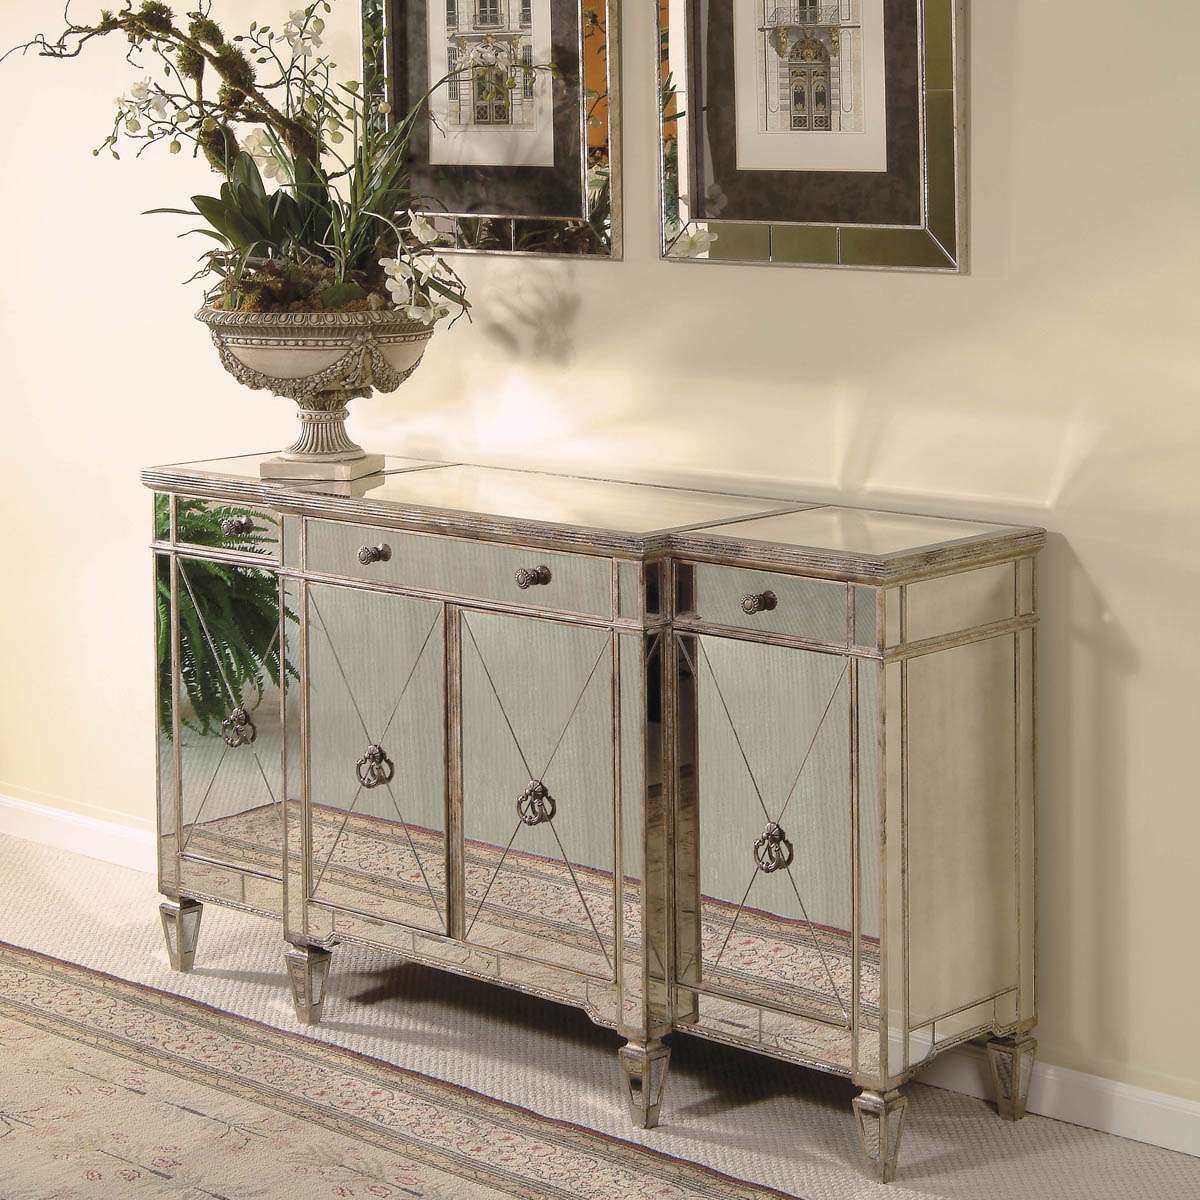 Excellent Mirrored Buffet Table — All About Home Design : How To With Mirrored Buffet Sideboards (View 7 of 20)